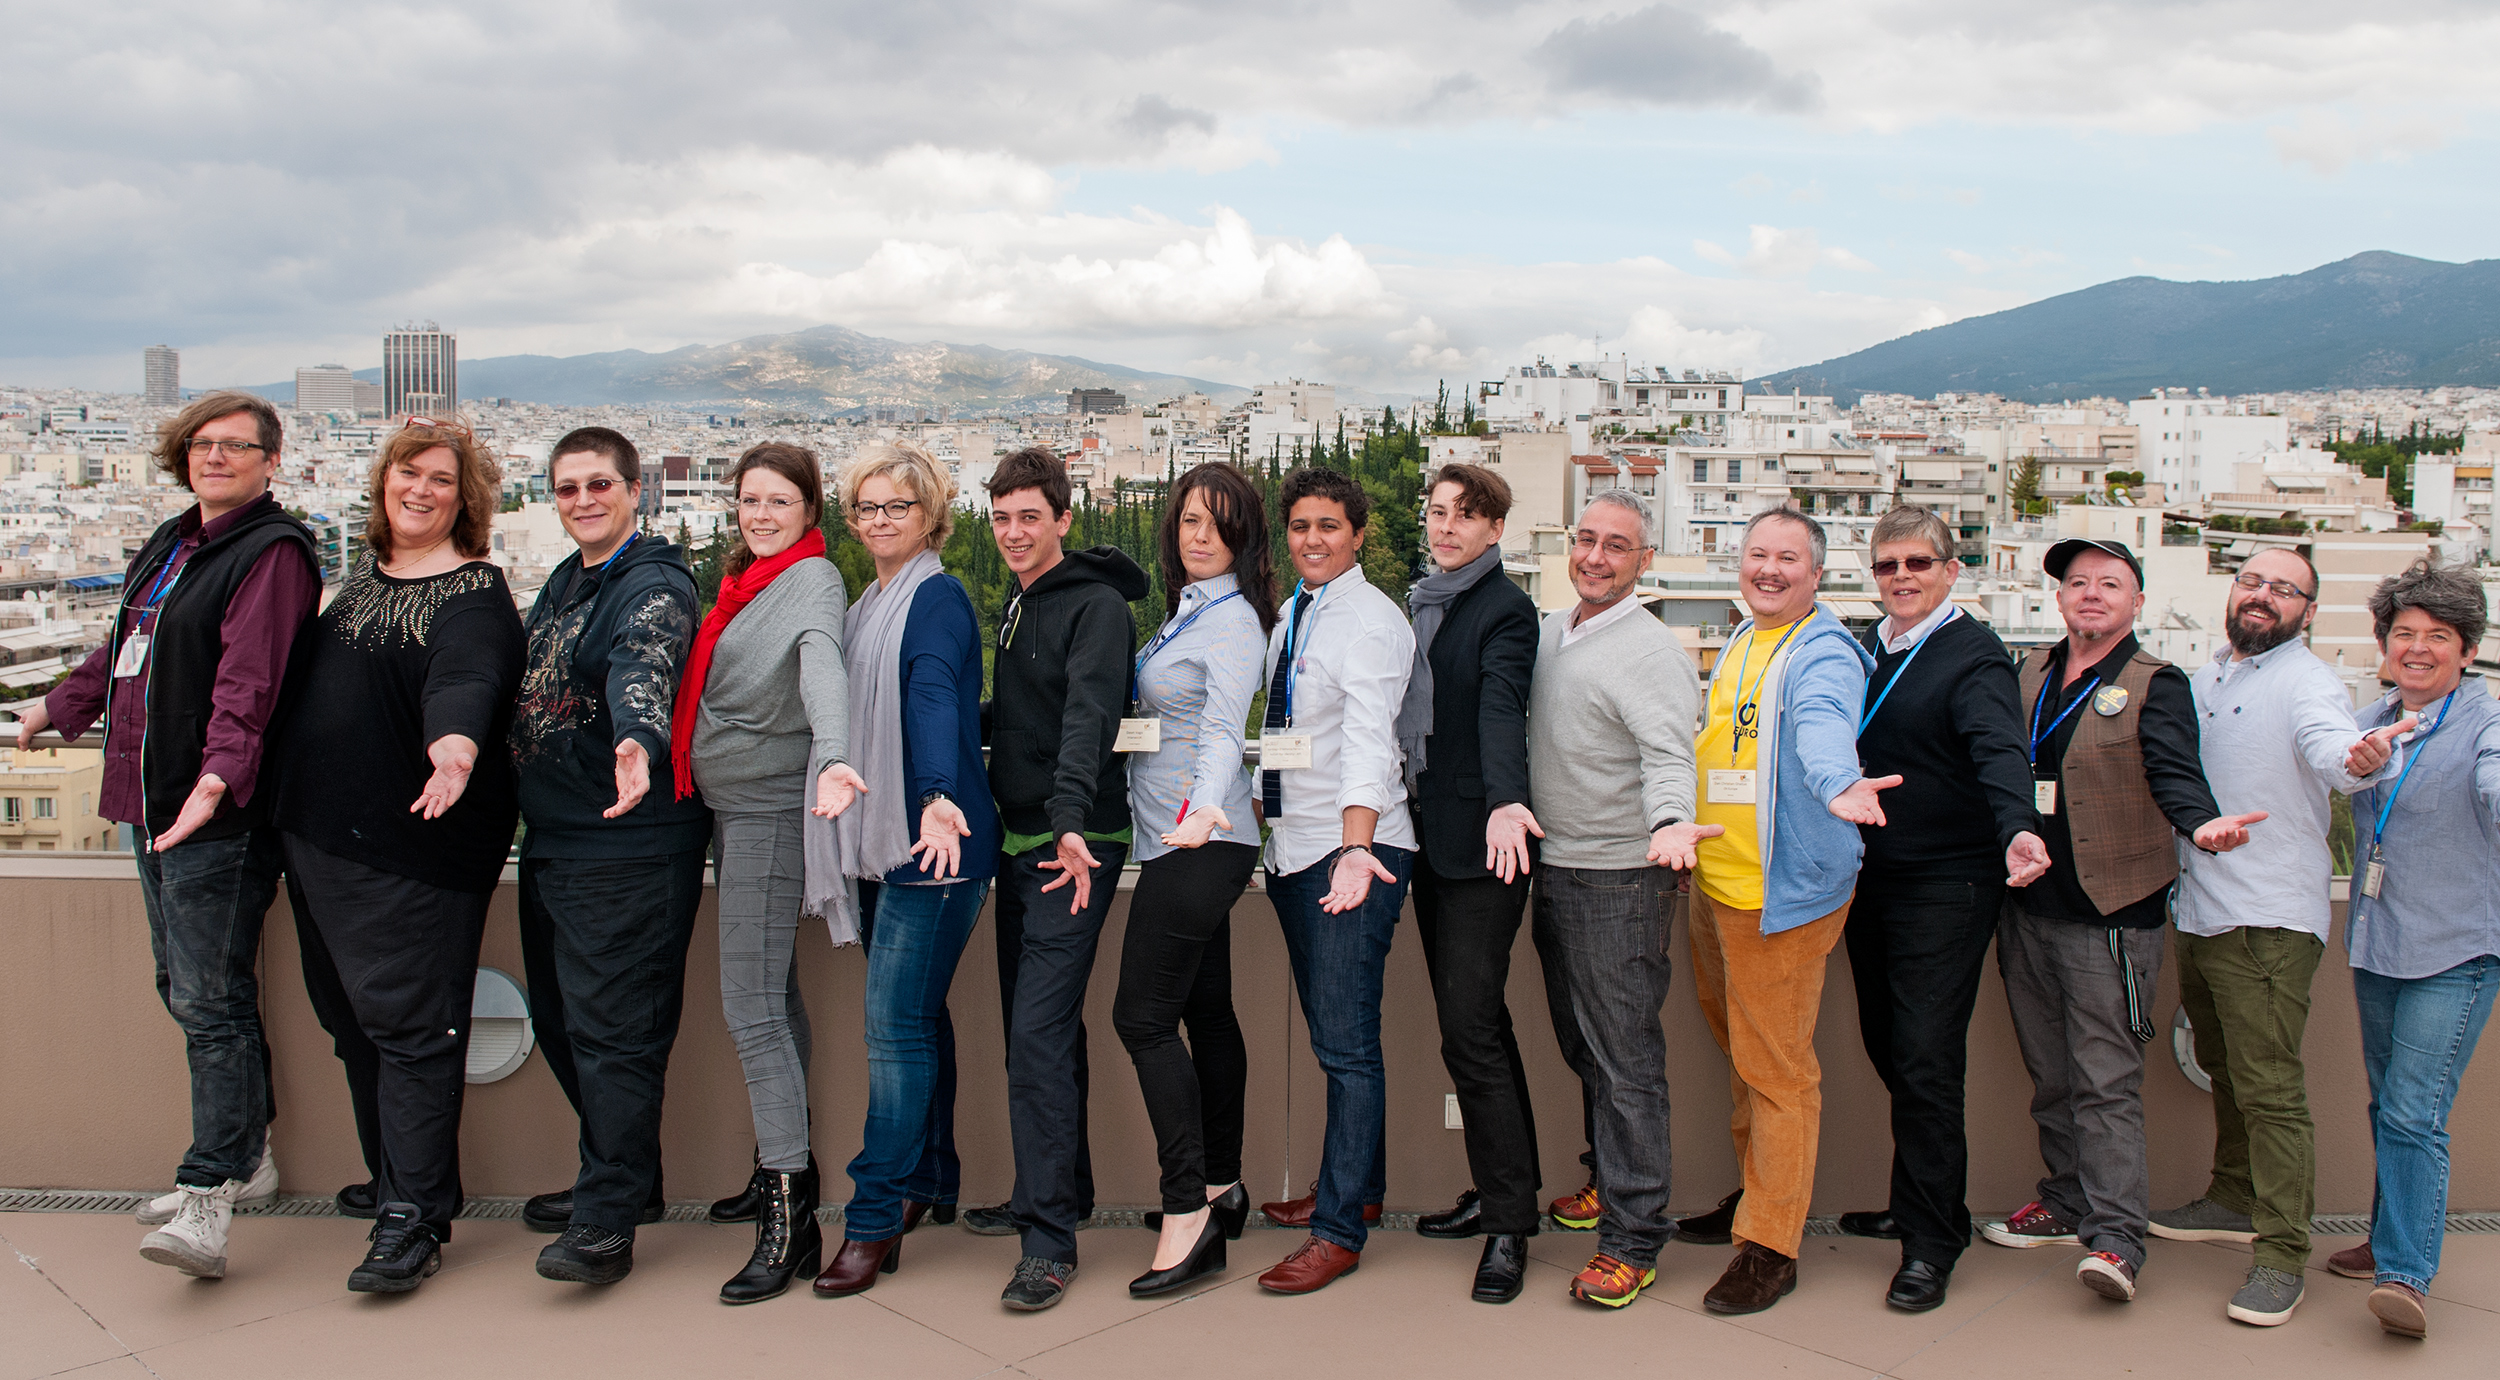 European Intersex Meeting 2015 in Athens, Greece